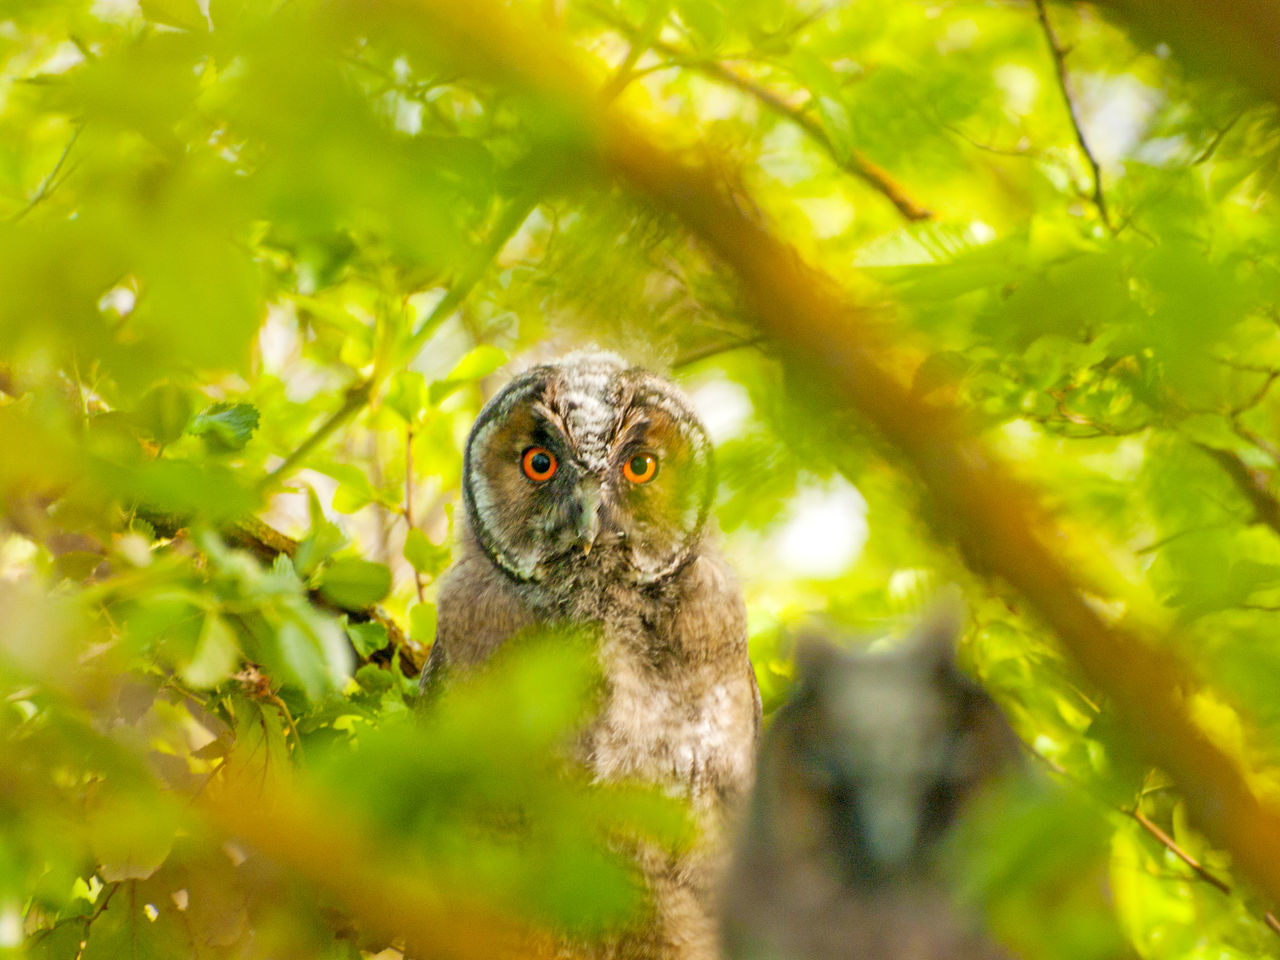 Animal Portrait Animal Themes Animals In The Wild Asio Otus Beauty In Nature Bird Bird Of Prey Birds Camouflage Camouflage Animals Close-up Day Environment Long-eared Owl Nature No People One Animal Outdoors Owl Owl Eyes Owls Perching Perching Bird Tree Wildlife The Great Outdoors - 2017 EyeEm Awards